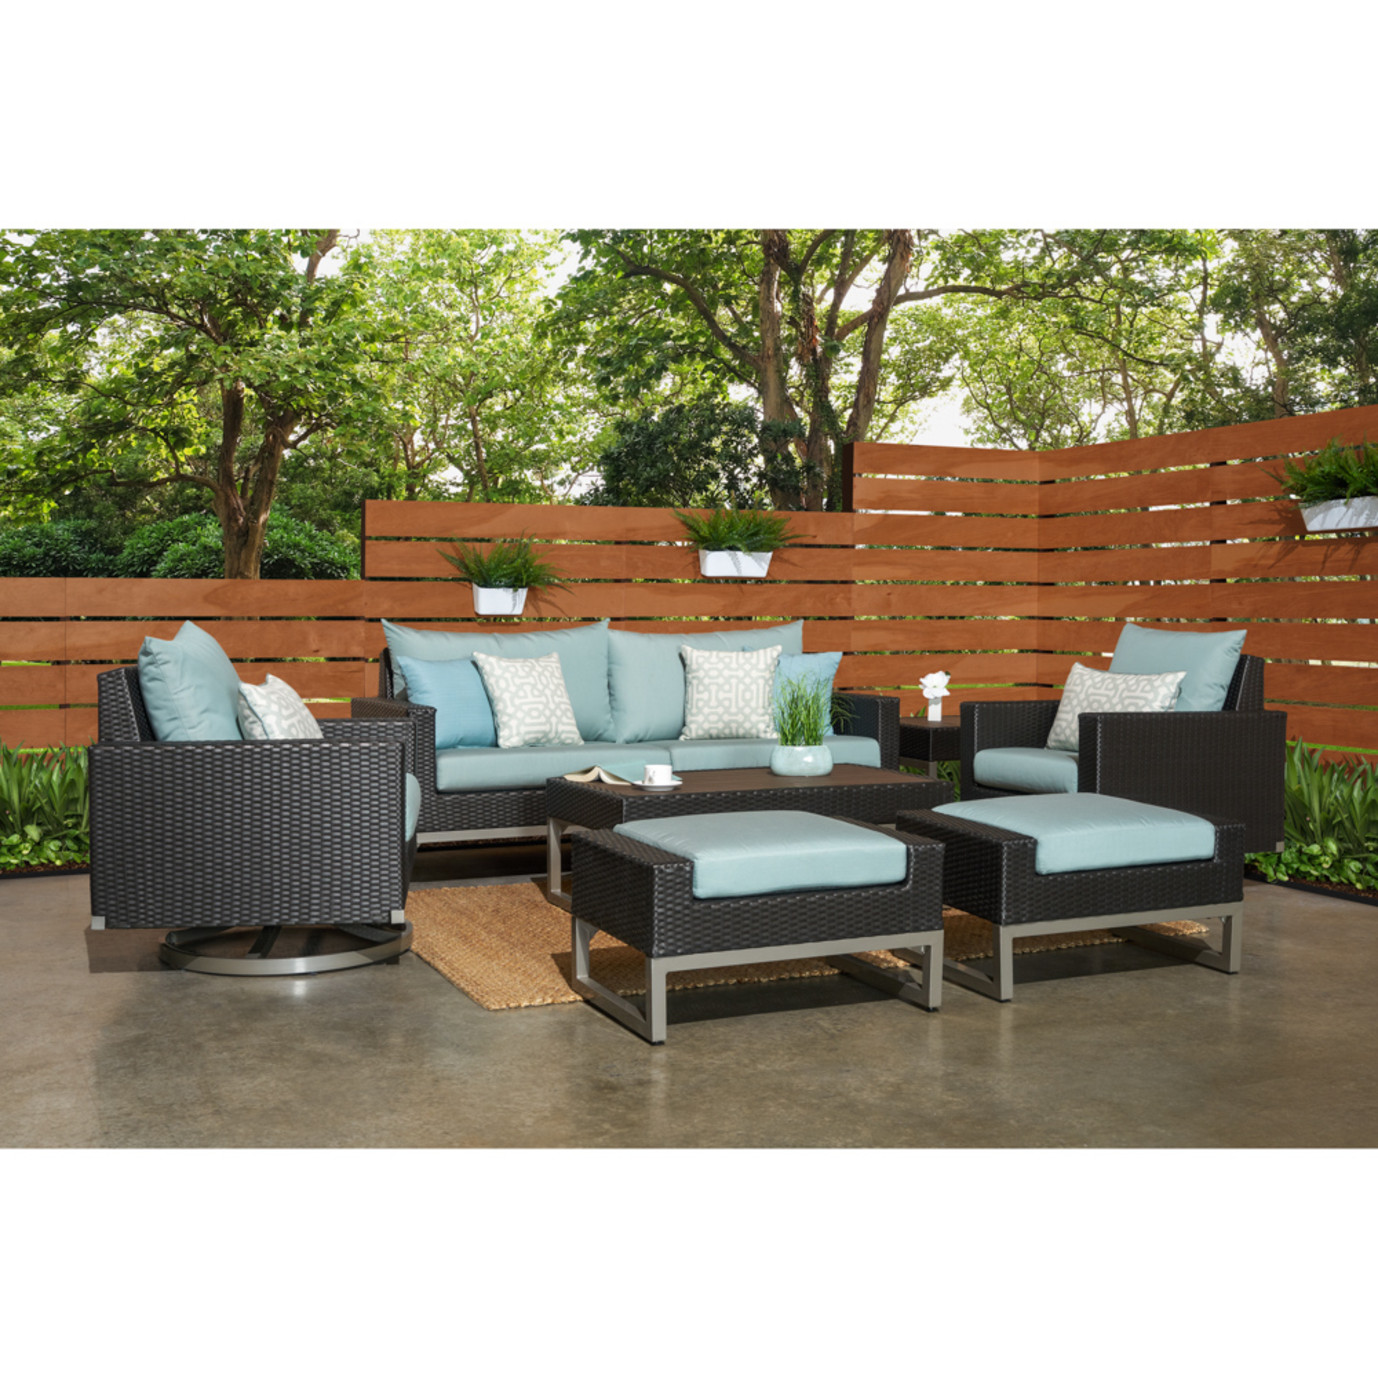 Milo™ Espresso 7 Piece Motion Deep Seating Set - Spa Blue